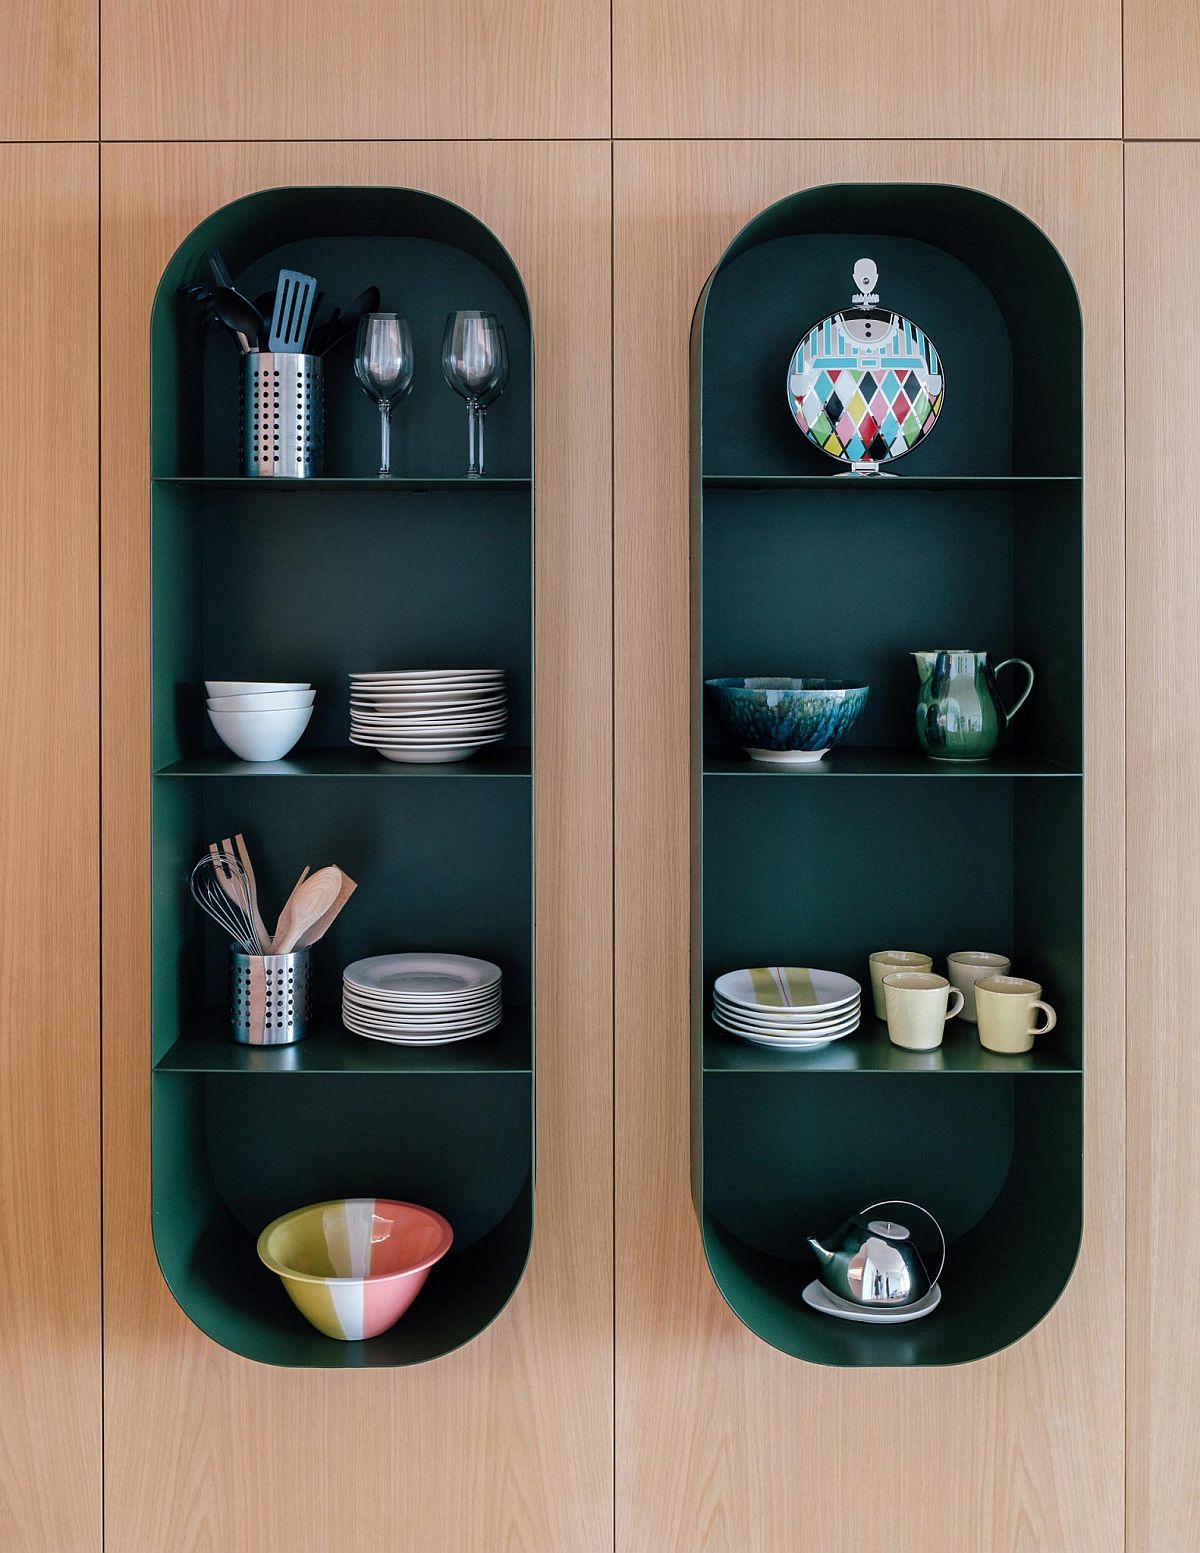 Small, bespoke green shelves can be added pretty much anywhere